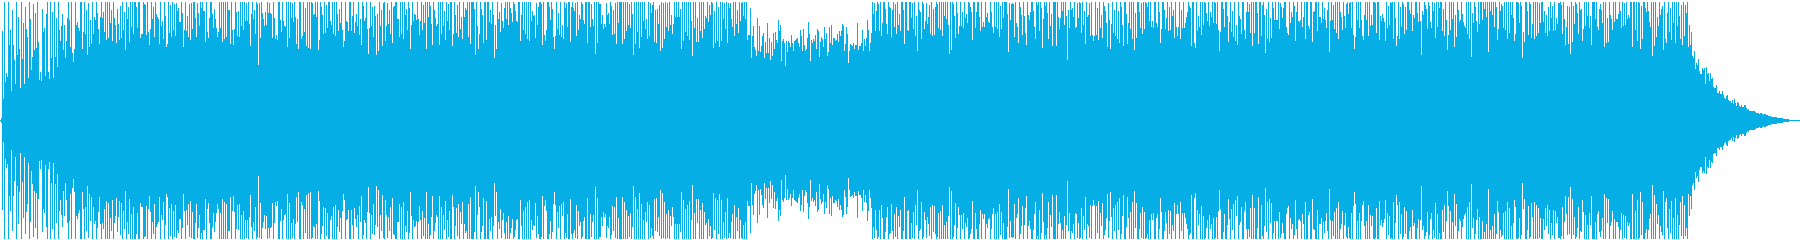 Cool and exhilarating opening's reproduced waveform